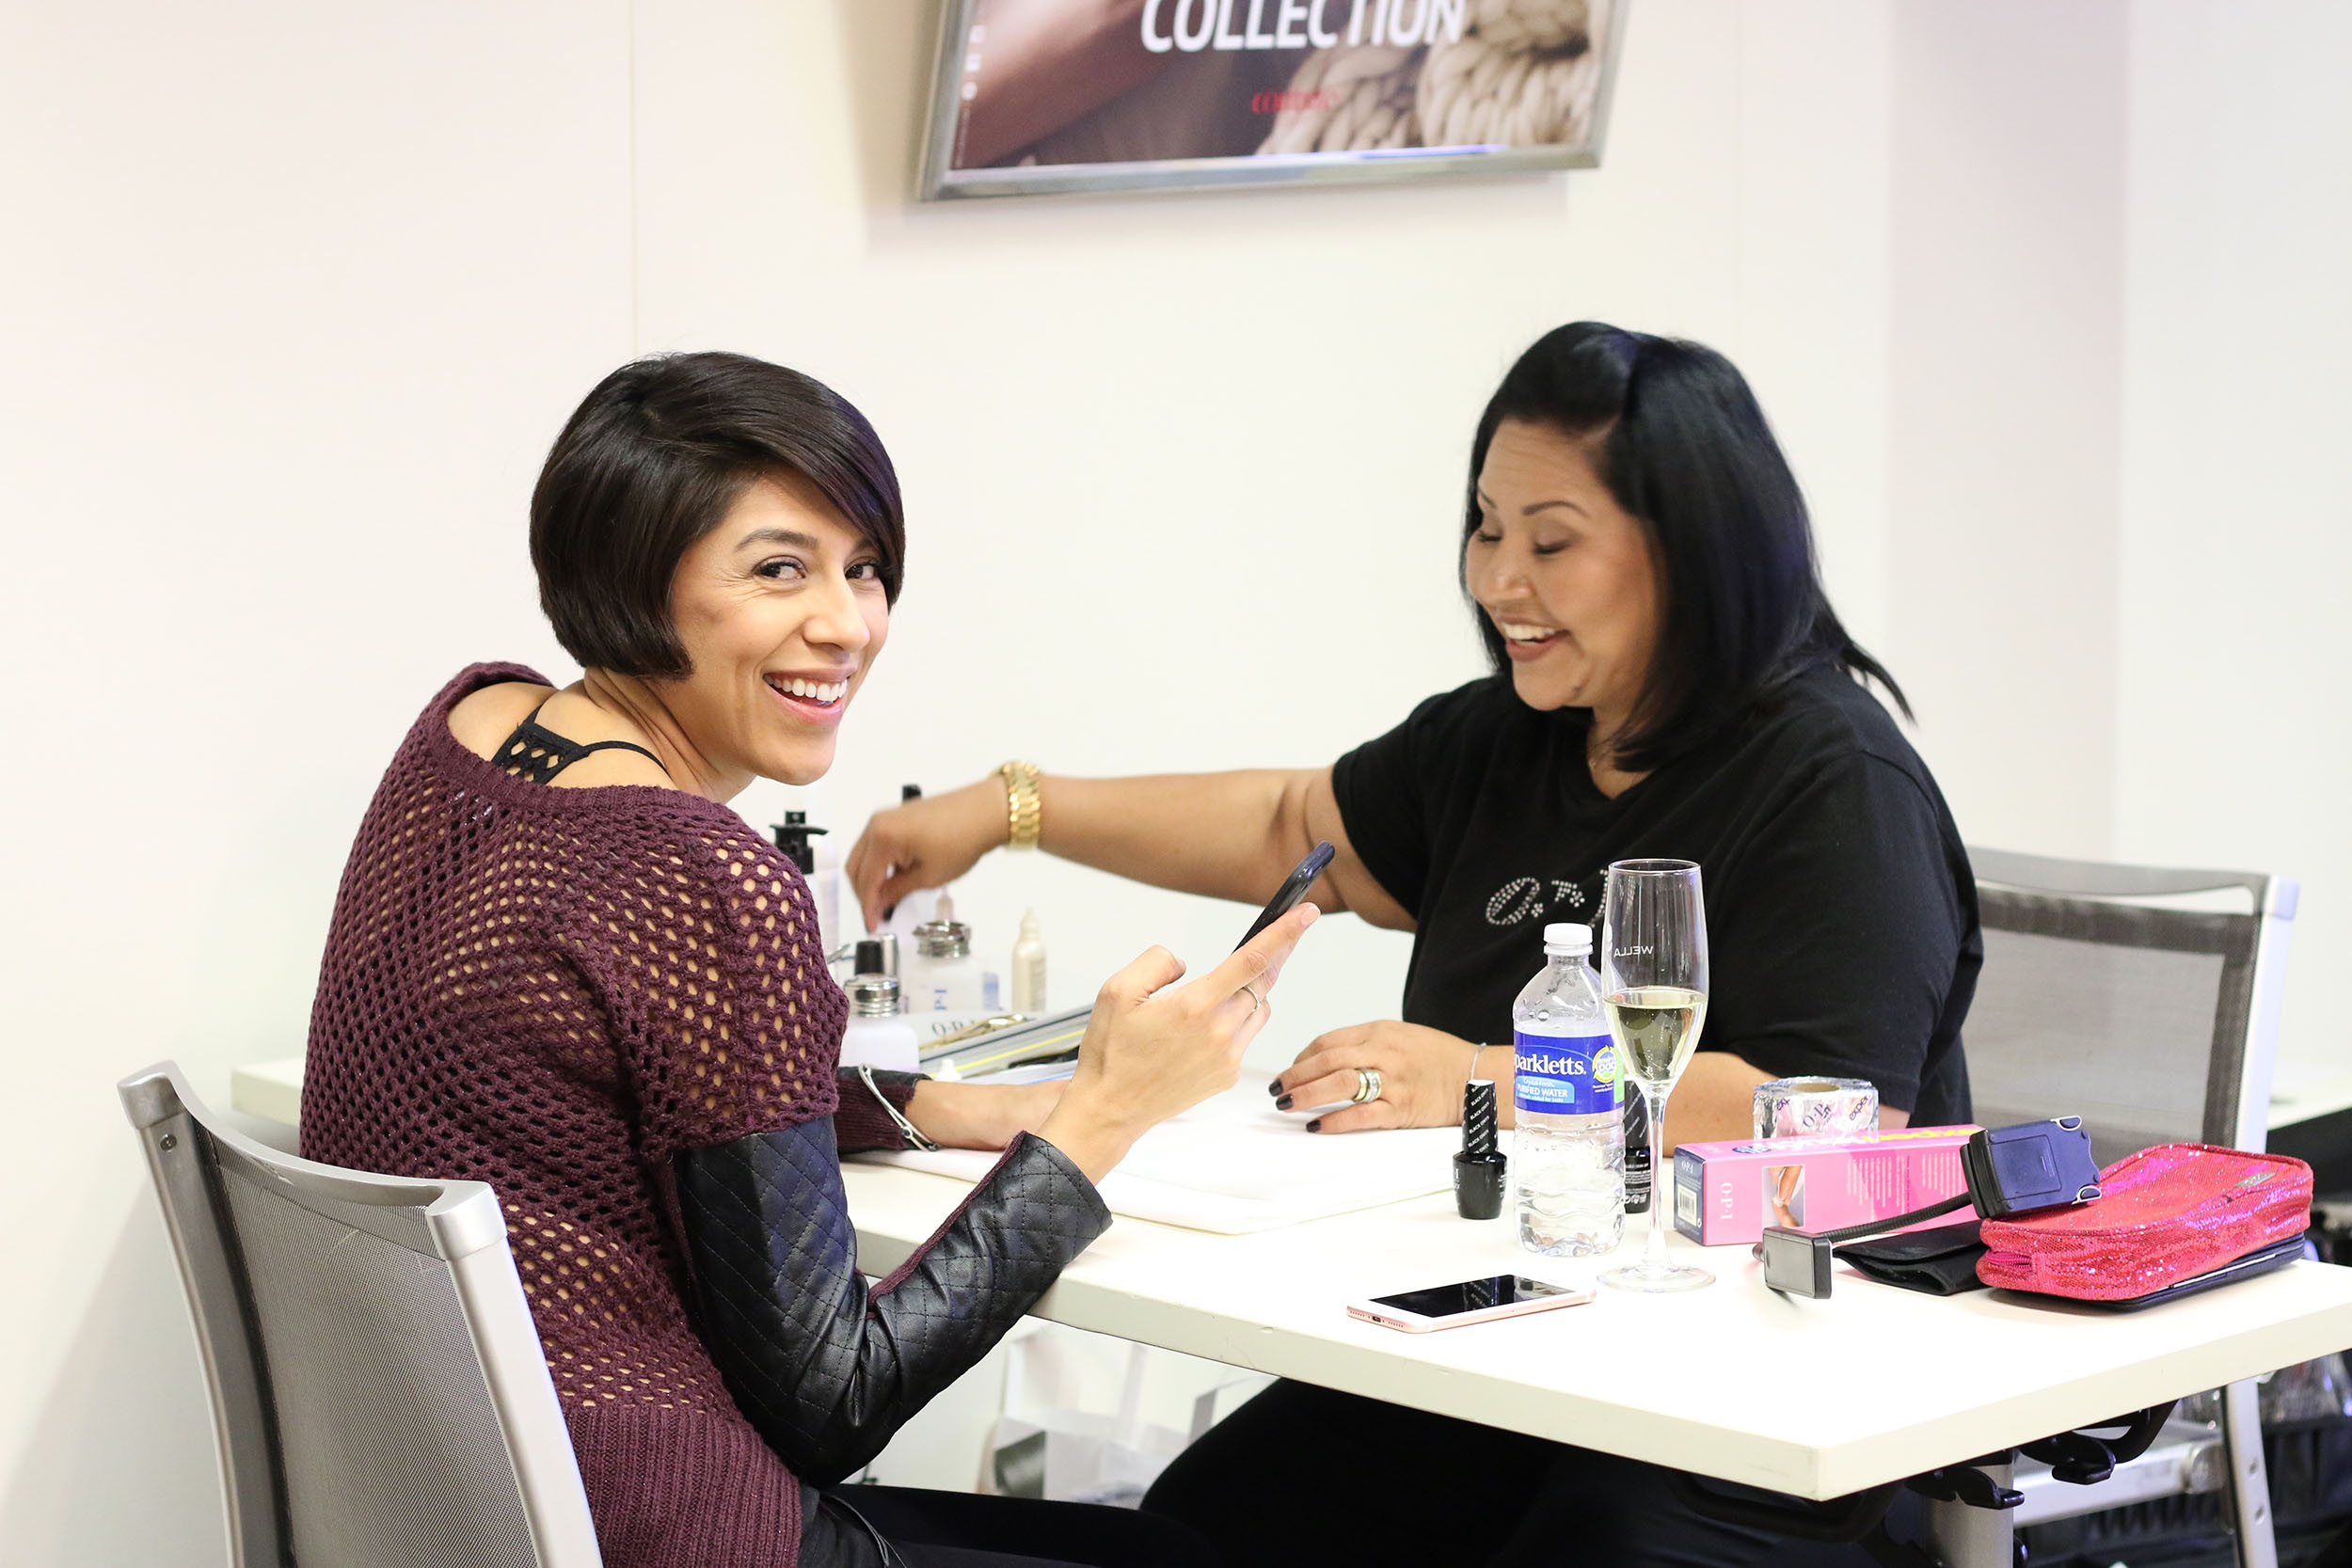 OPI educators provided manicures during the event.